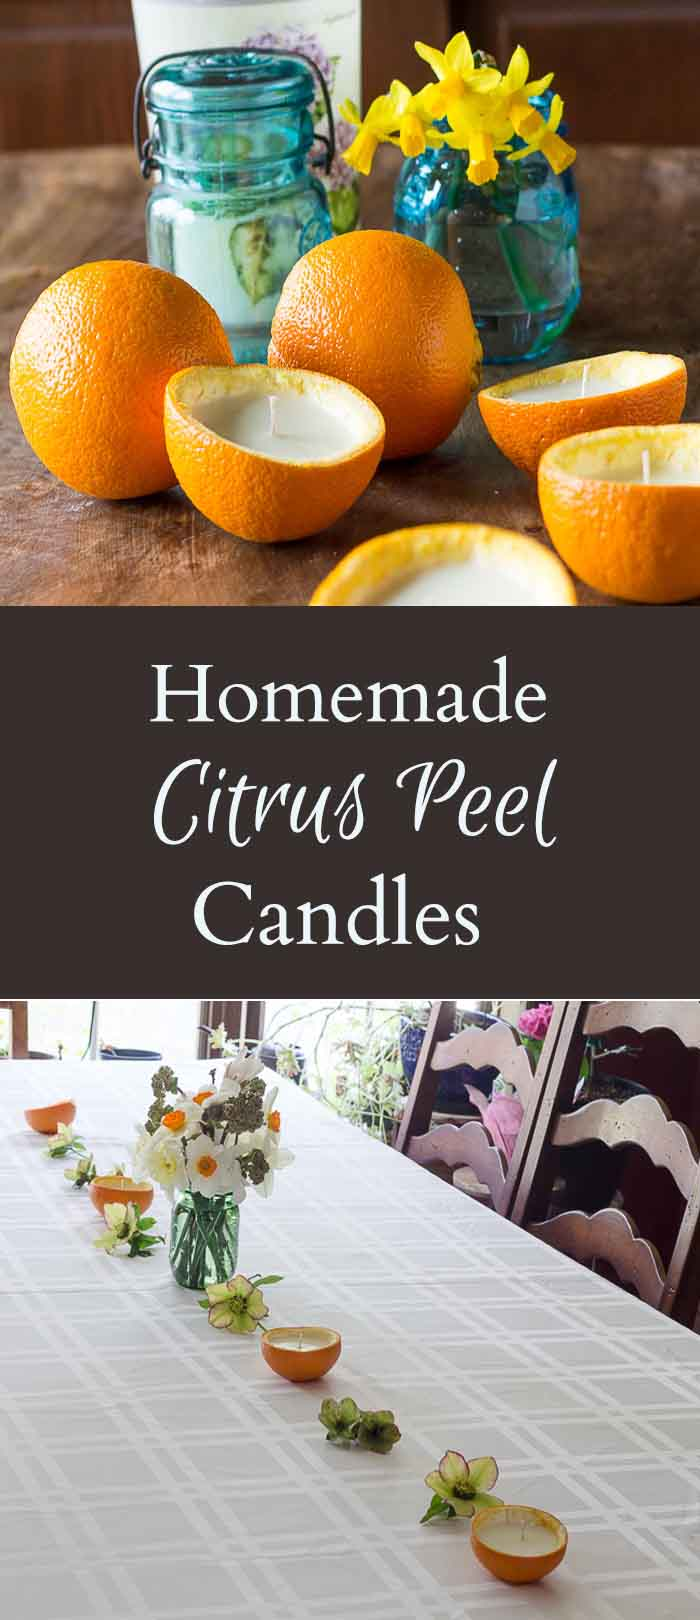 Learn how to make homemade candles with real orange rinds, wax and essential oils. They look so pretty and natural and will last for the evening.